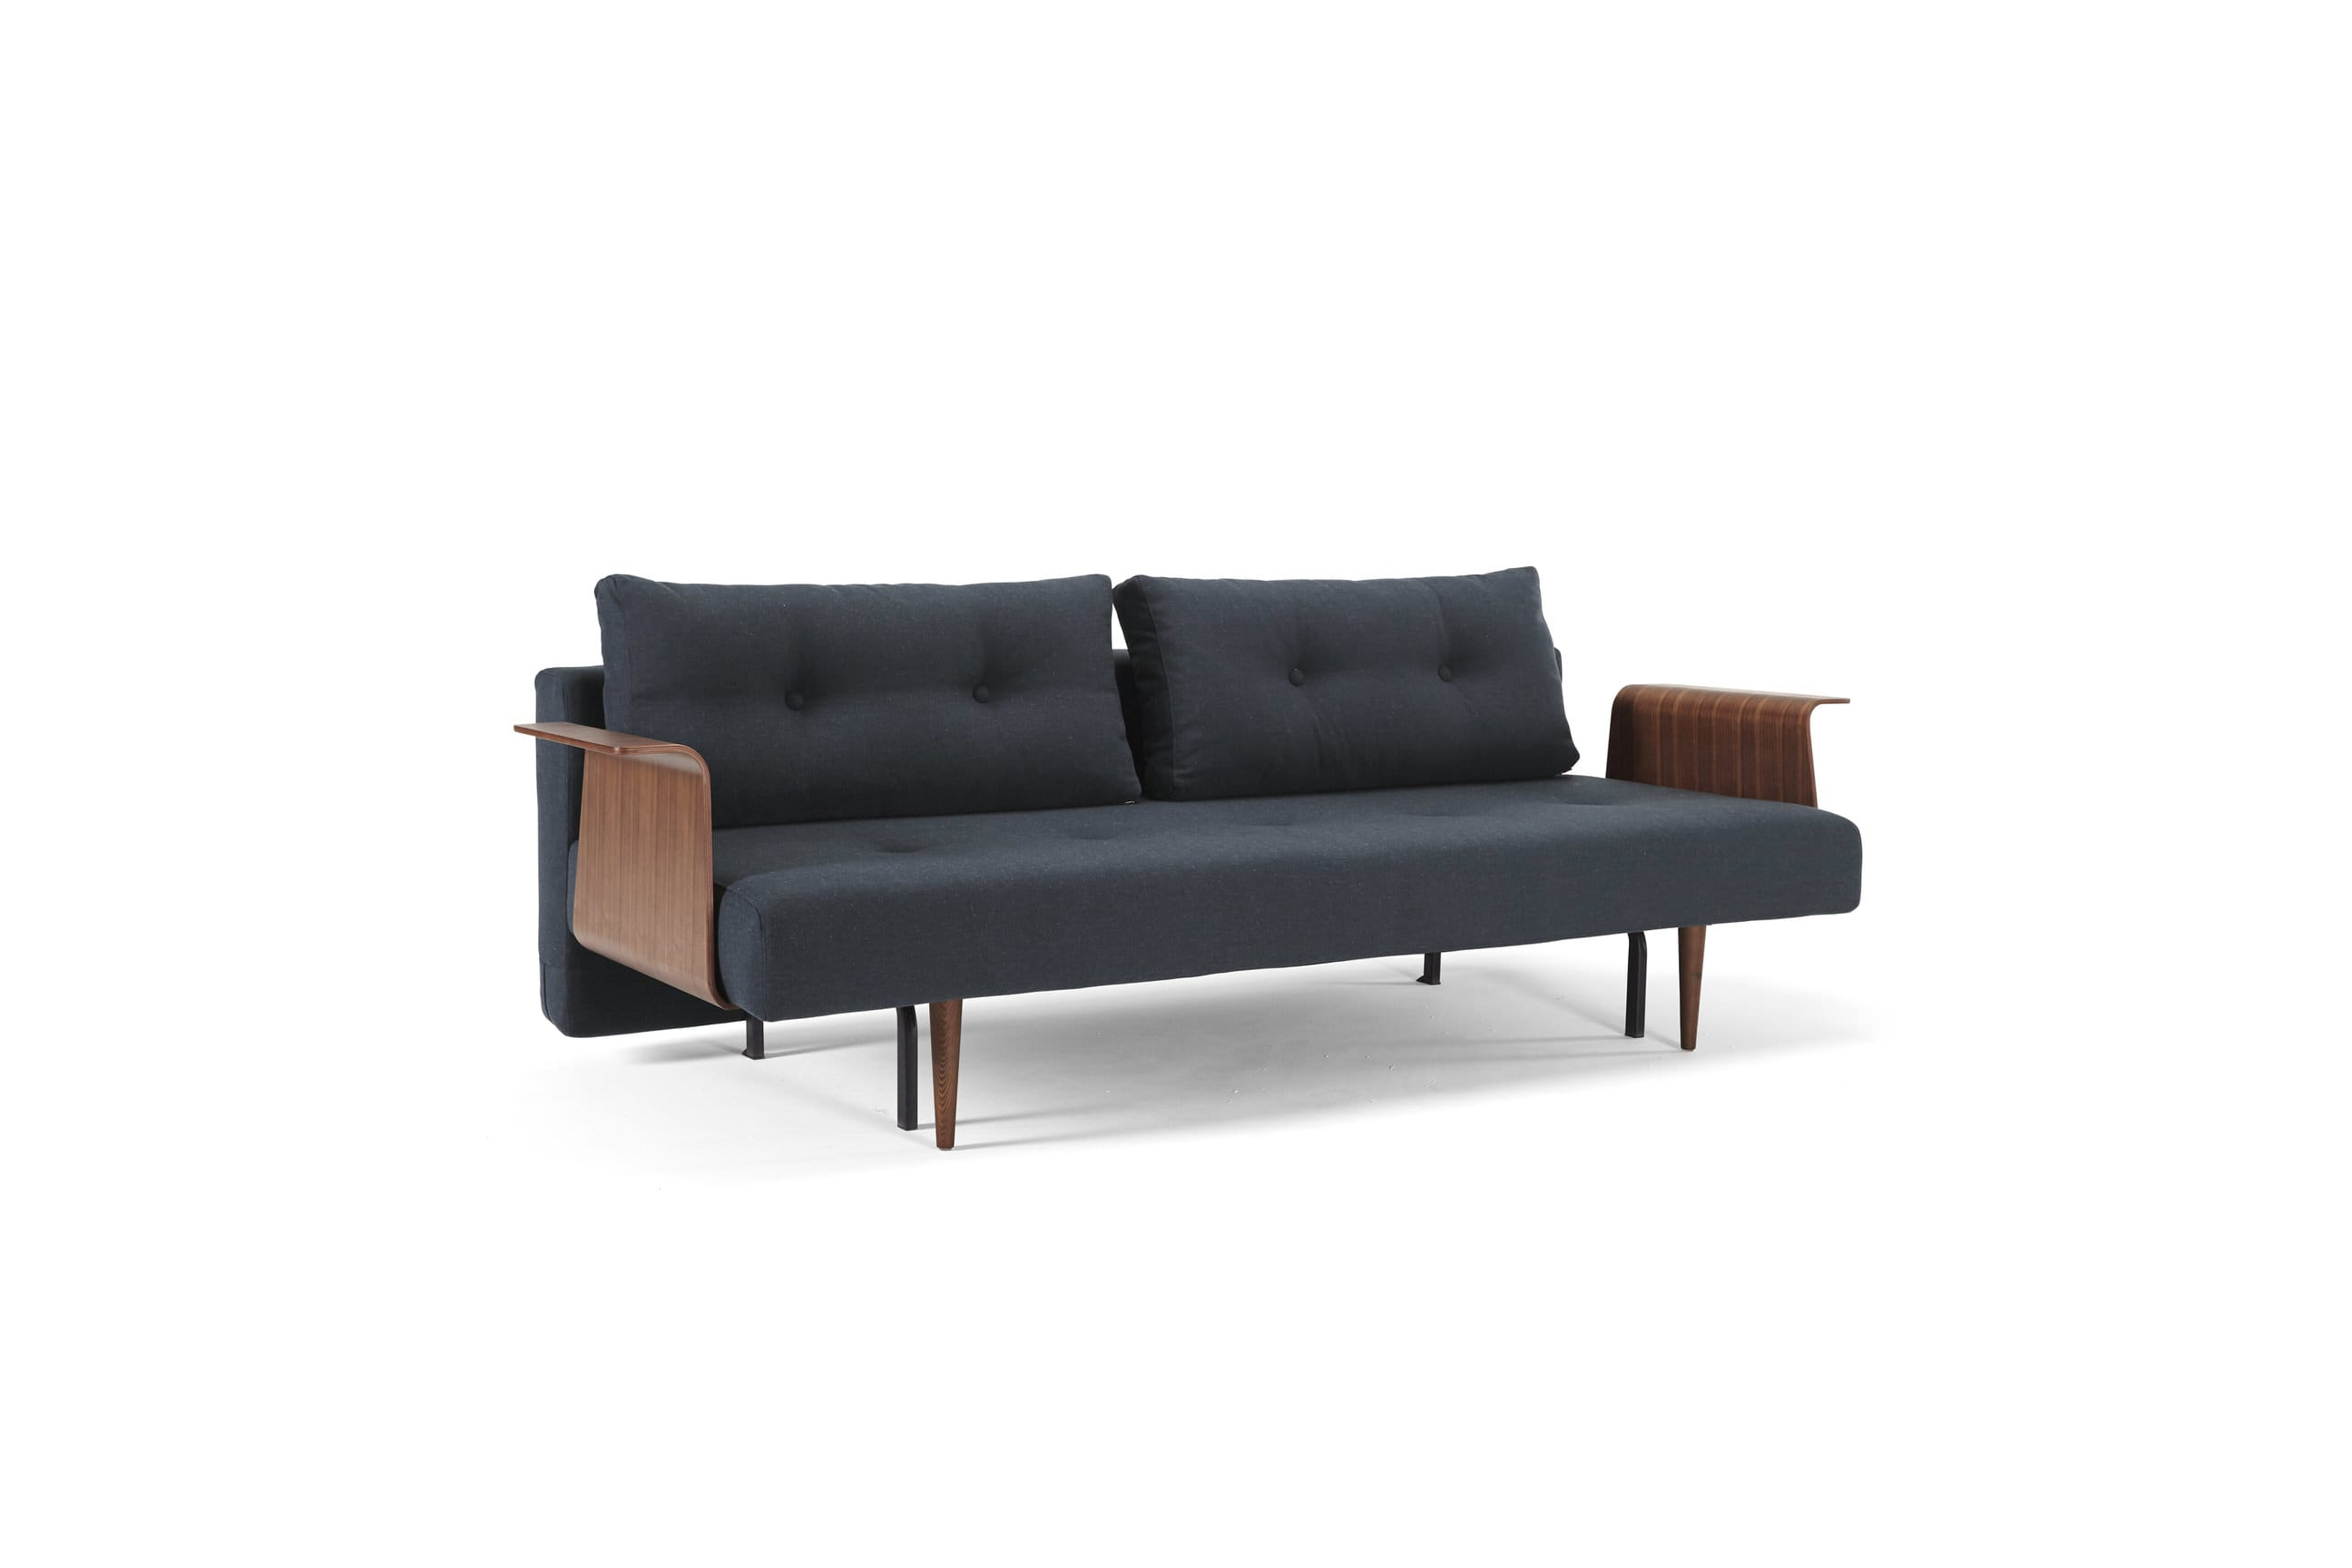 Recast Sofa Bed w Walnut Arms Full Size Nist Blue by Innovation